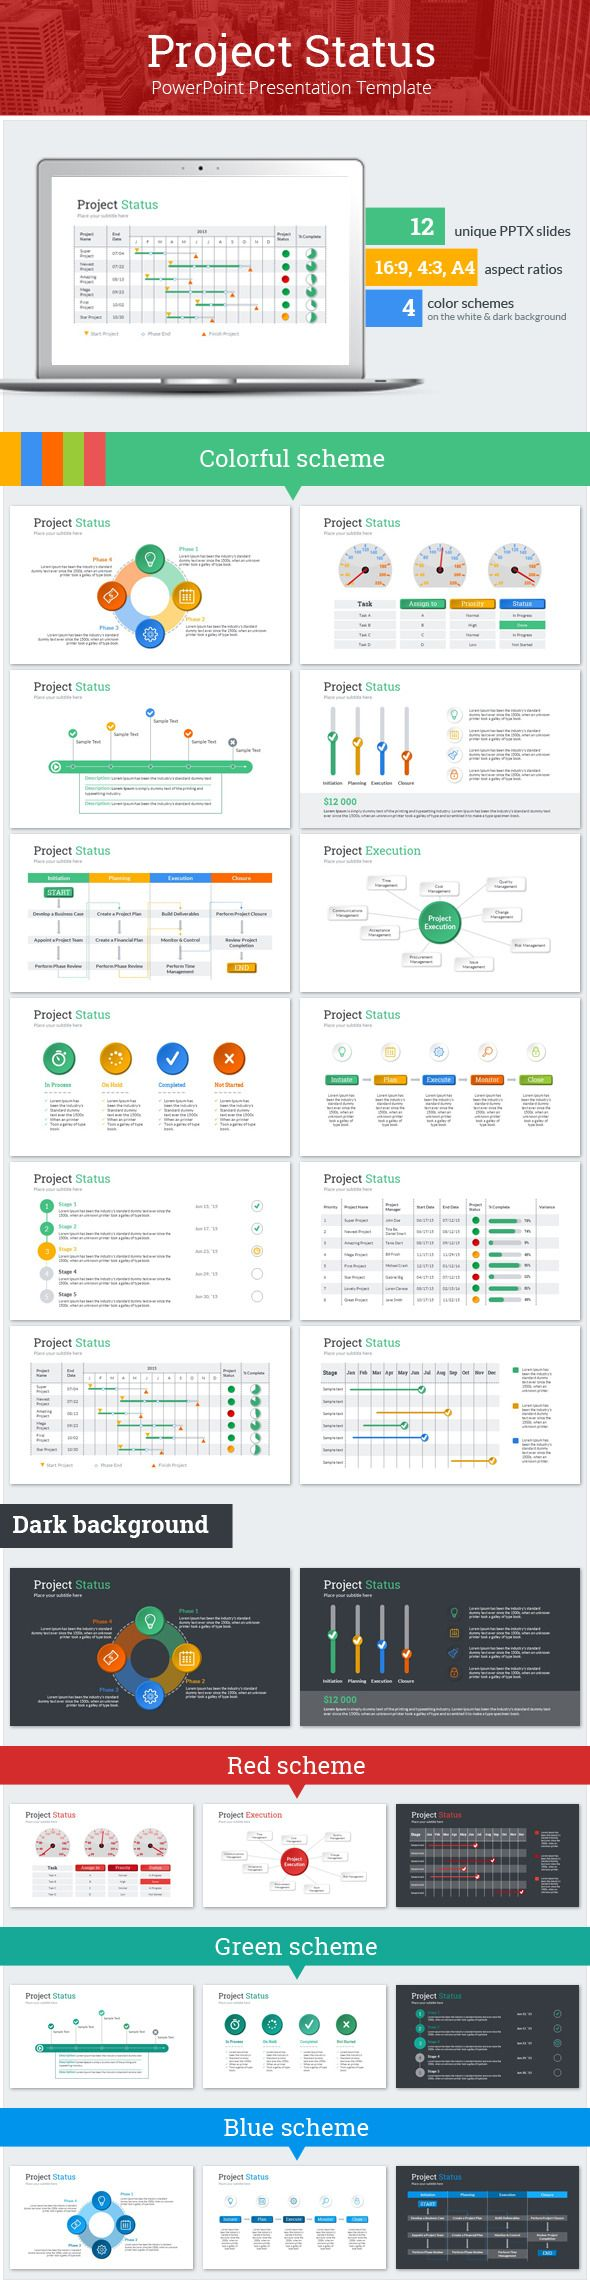 Best 25+ Project management templates ideas on Pinterest | Project ...